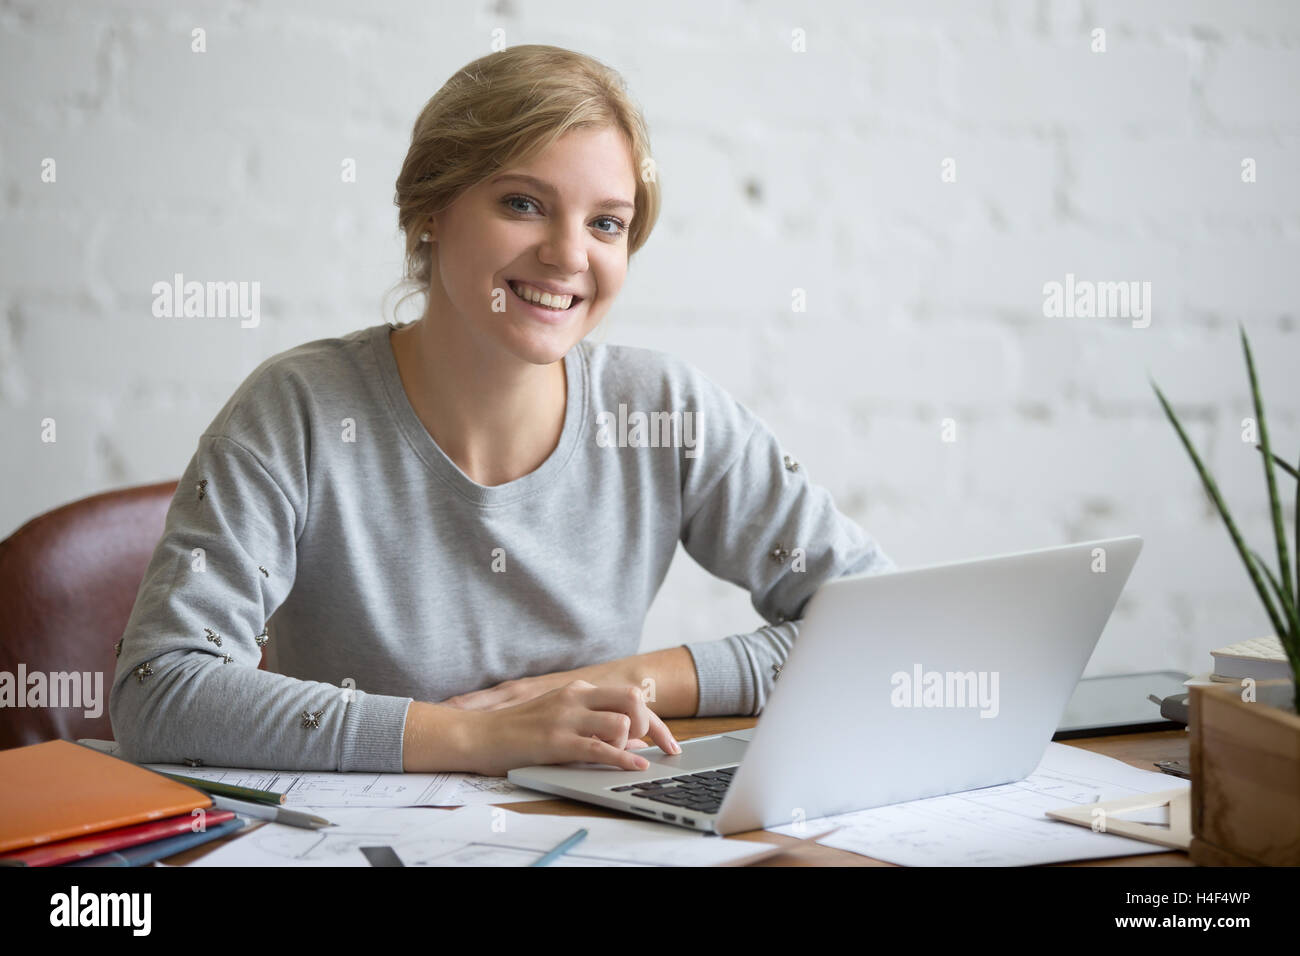 Portrait of a smiling student girl at desk with laptop - Stock Image